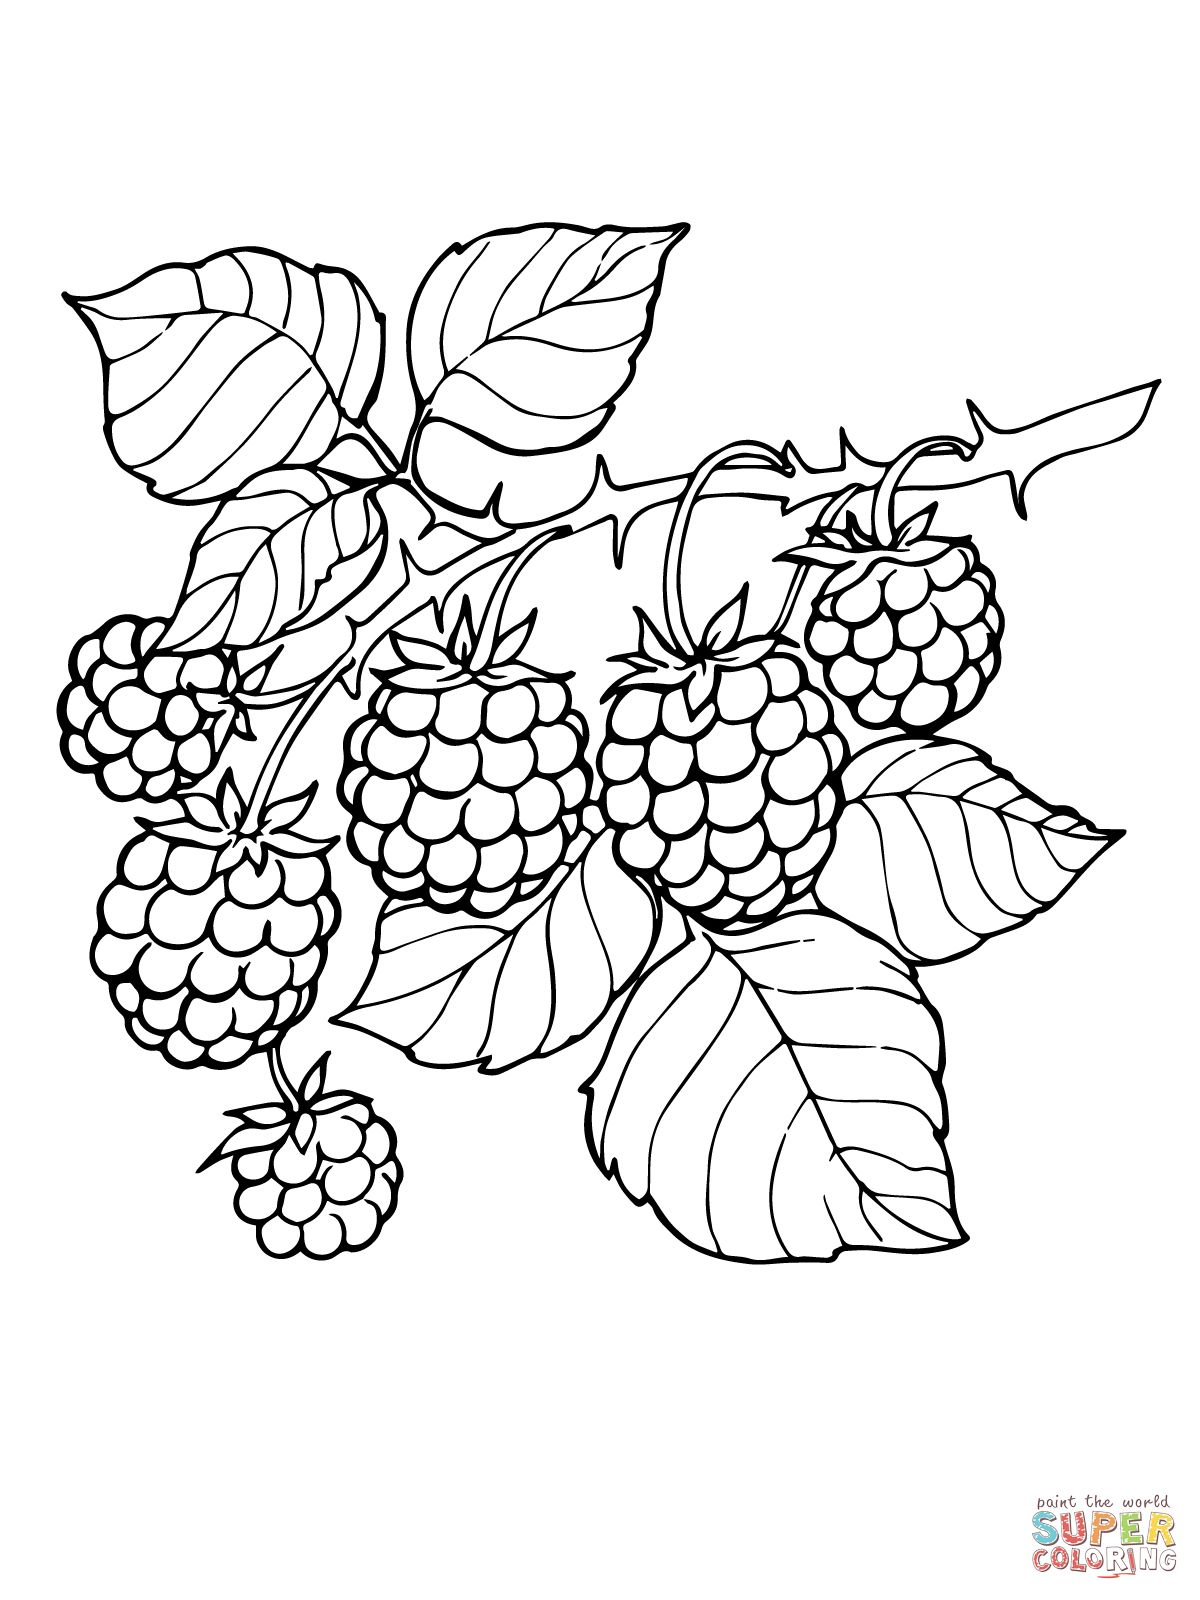 Blackberry Branch Super Coloring With Images Fruit Coloring